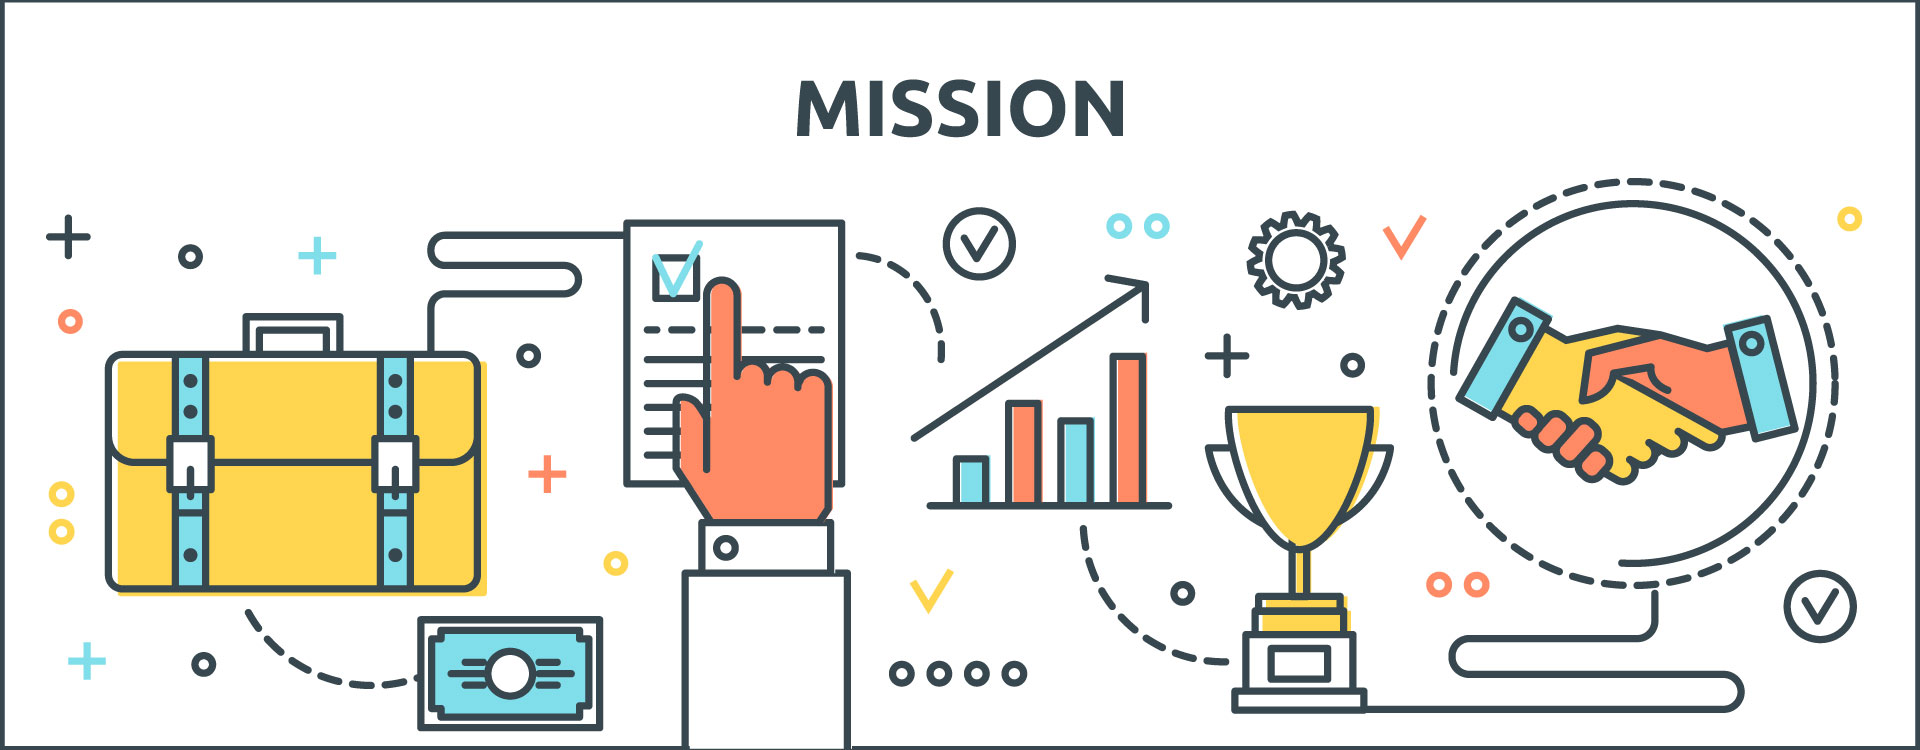 Stitching Together the Perfect Mission Statement